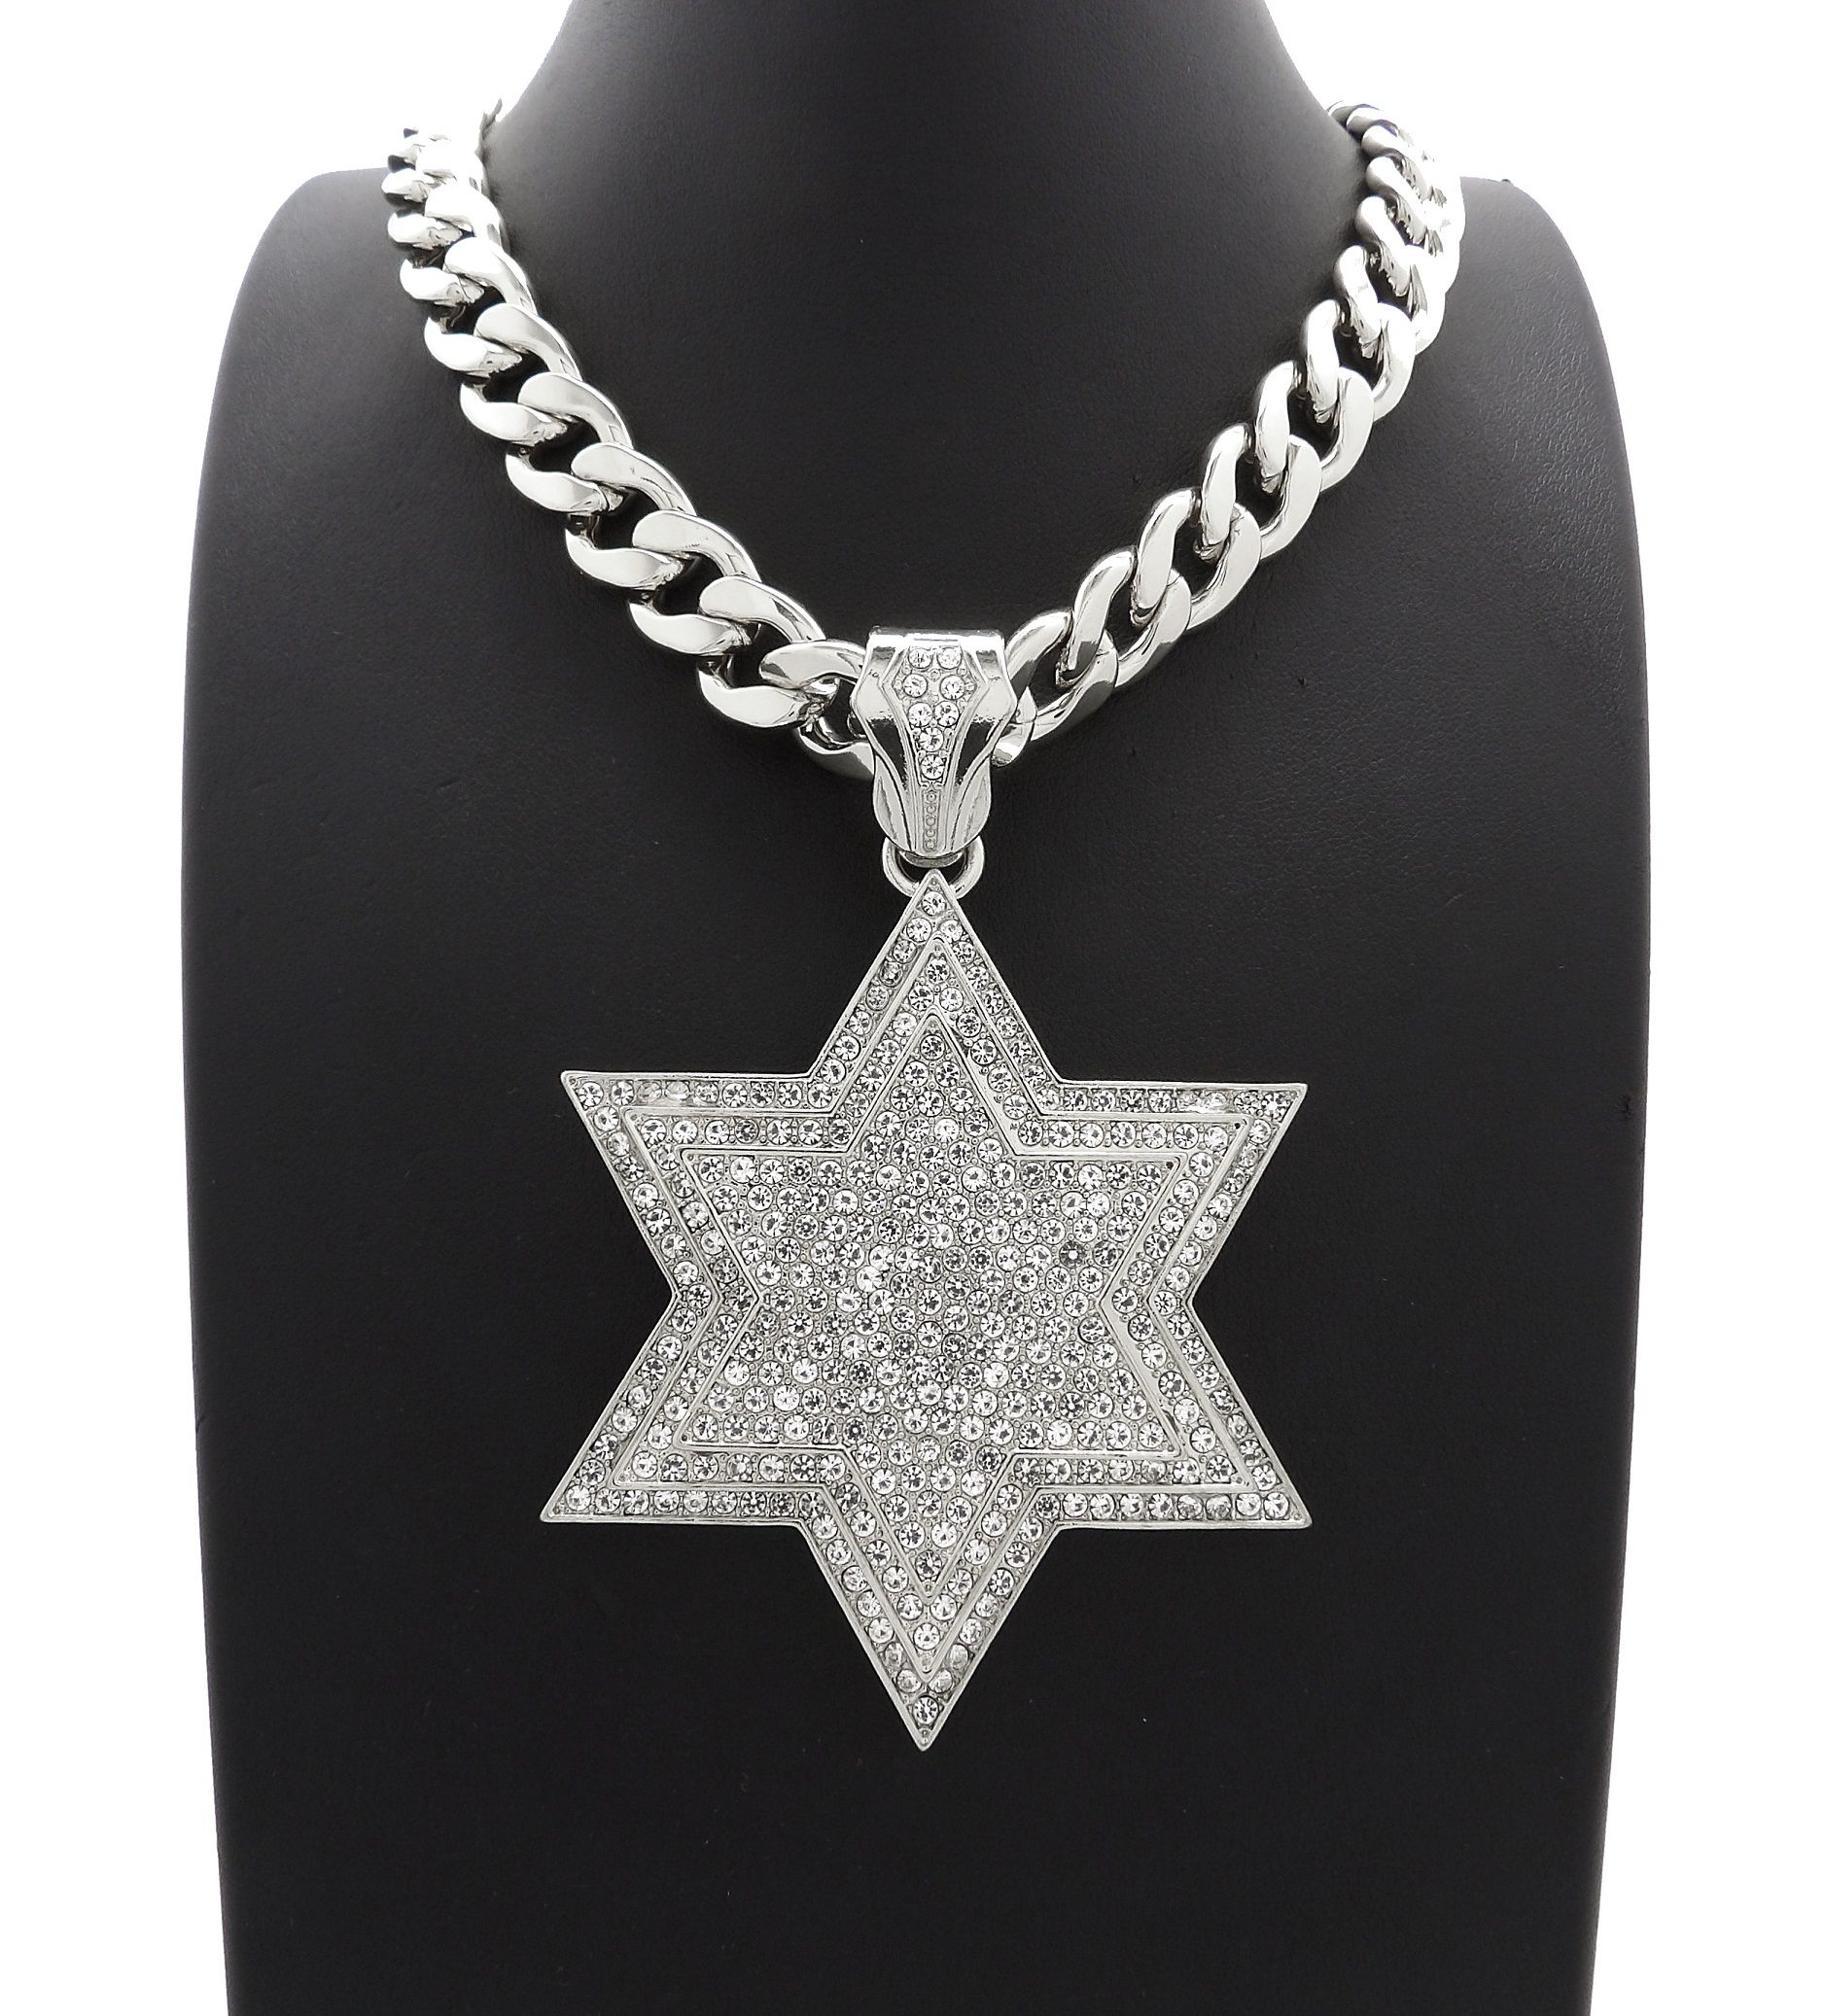 NYFASHION101 Stone Stud Mob Pendant with 11mm Cuban Chain Necklace